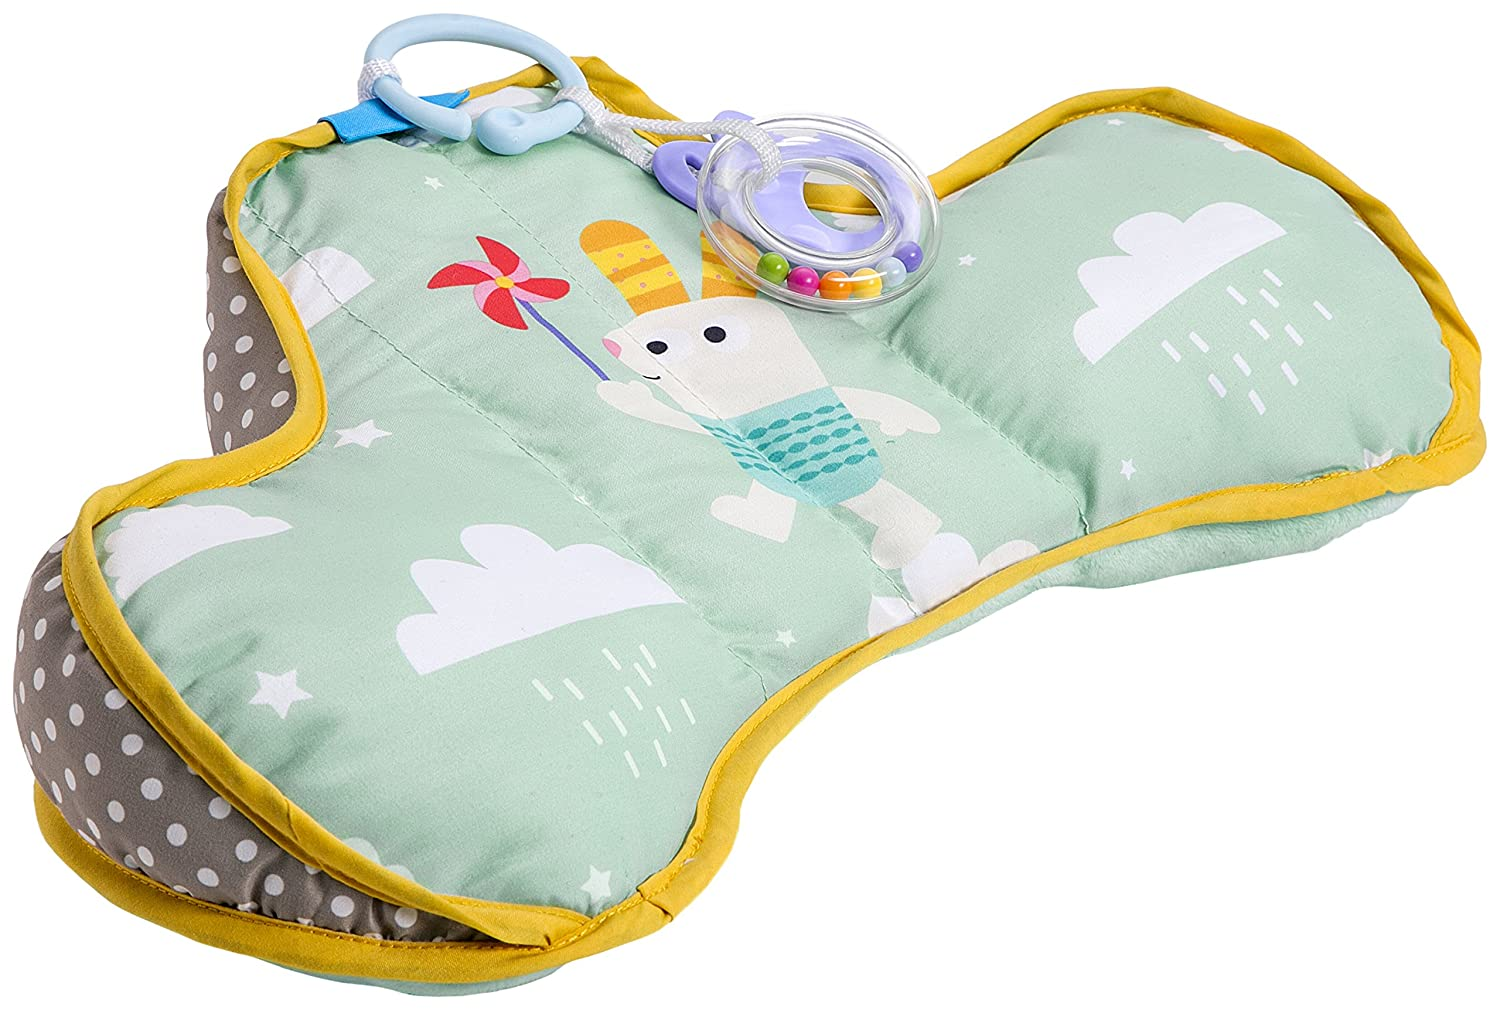 Taf Toys Baby Tummy Time Pillow | Perfect For 2-6 Months Old Babies, Enables Easier Development & Easier Parenting, Natural Developmental, Comfortable Tummy Time, Ergonomic Design, Detachable Toys TAF12045